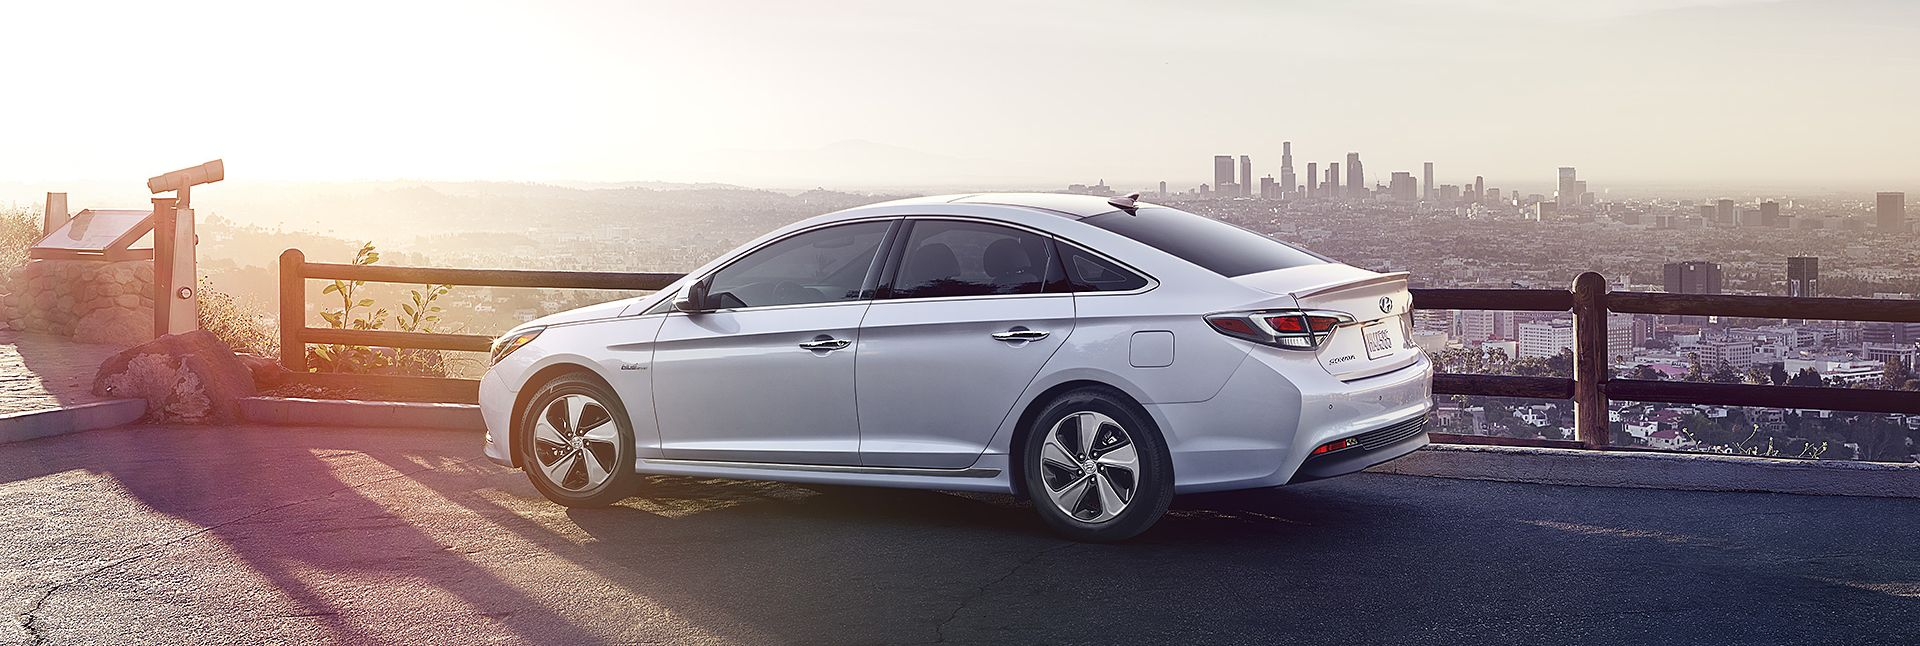 Hyundai Sonata: Impact sensing door unlock system (if equipped)